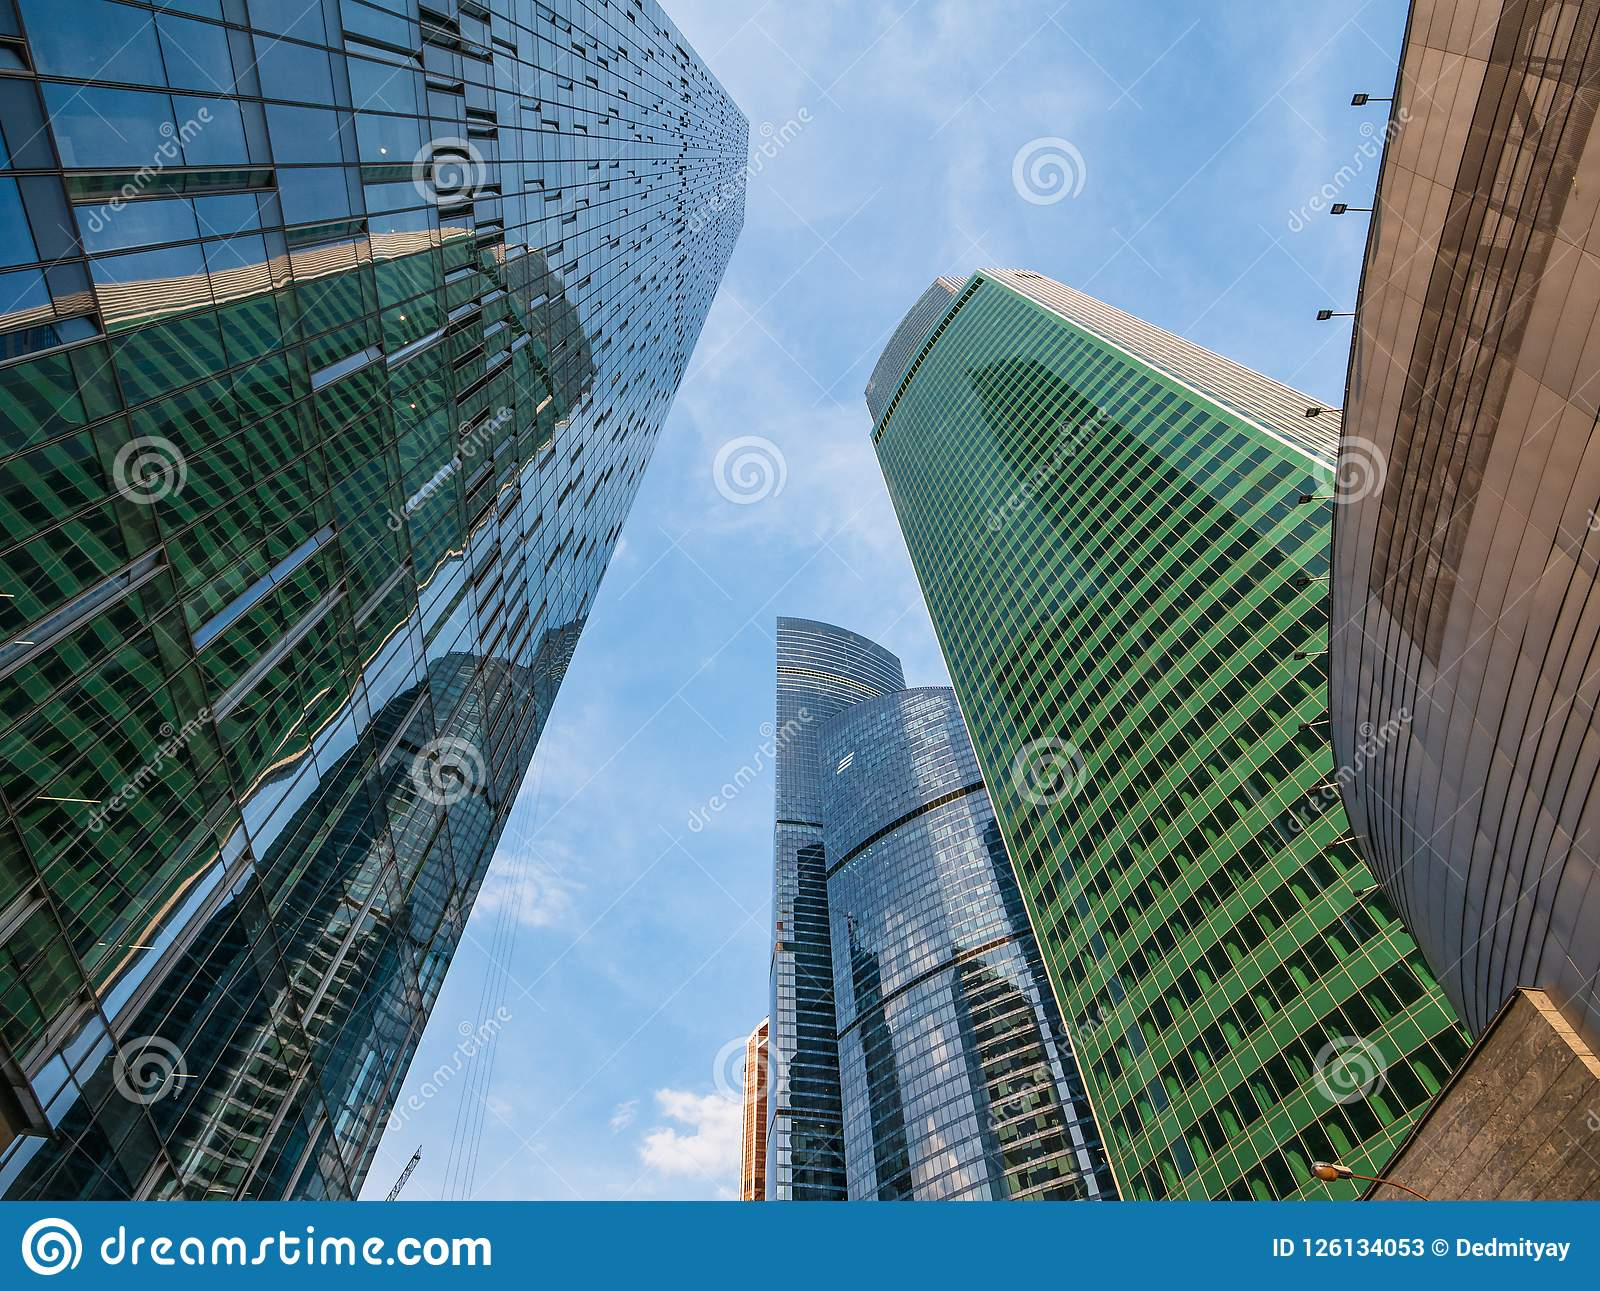 Download Modern Futuristic Skyscrapers Buildings In Business Center Moscow City Stock Image